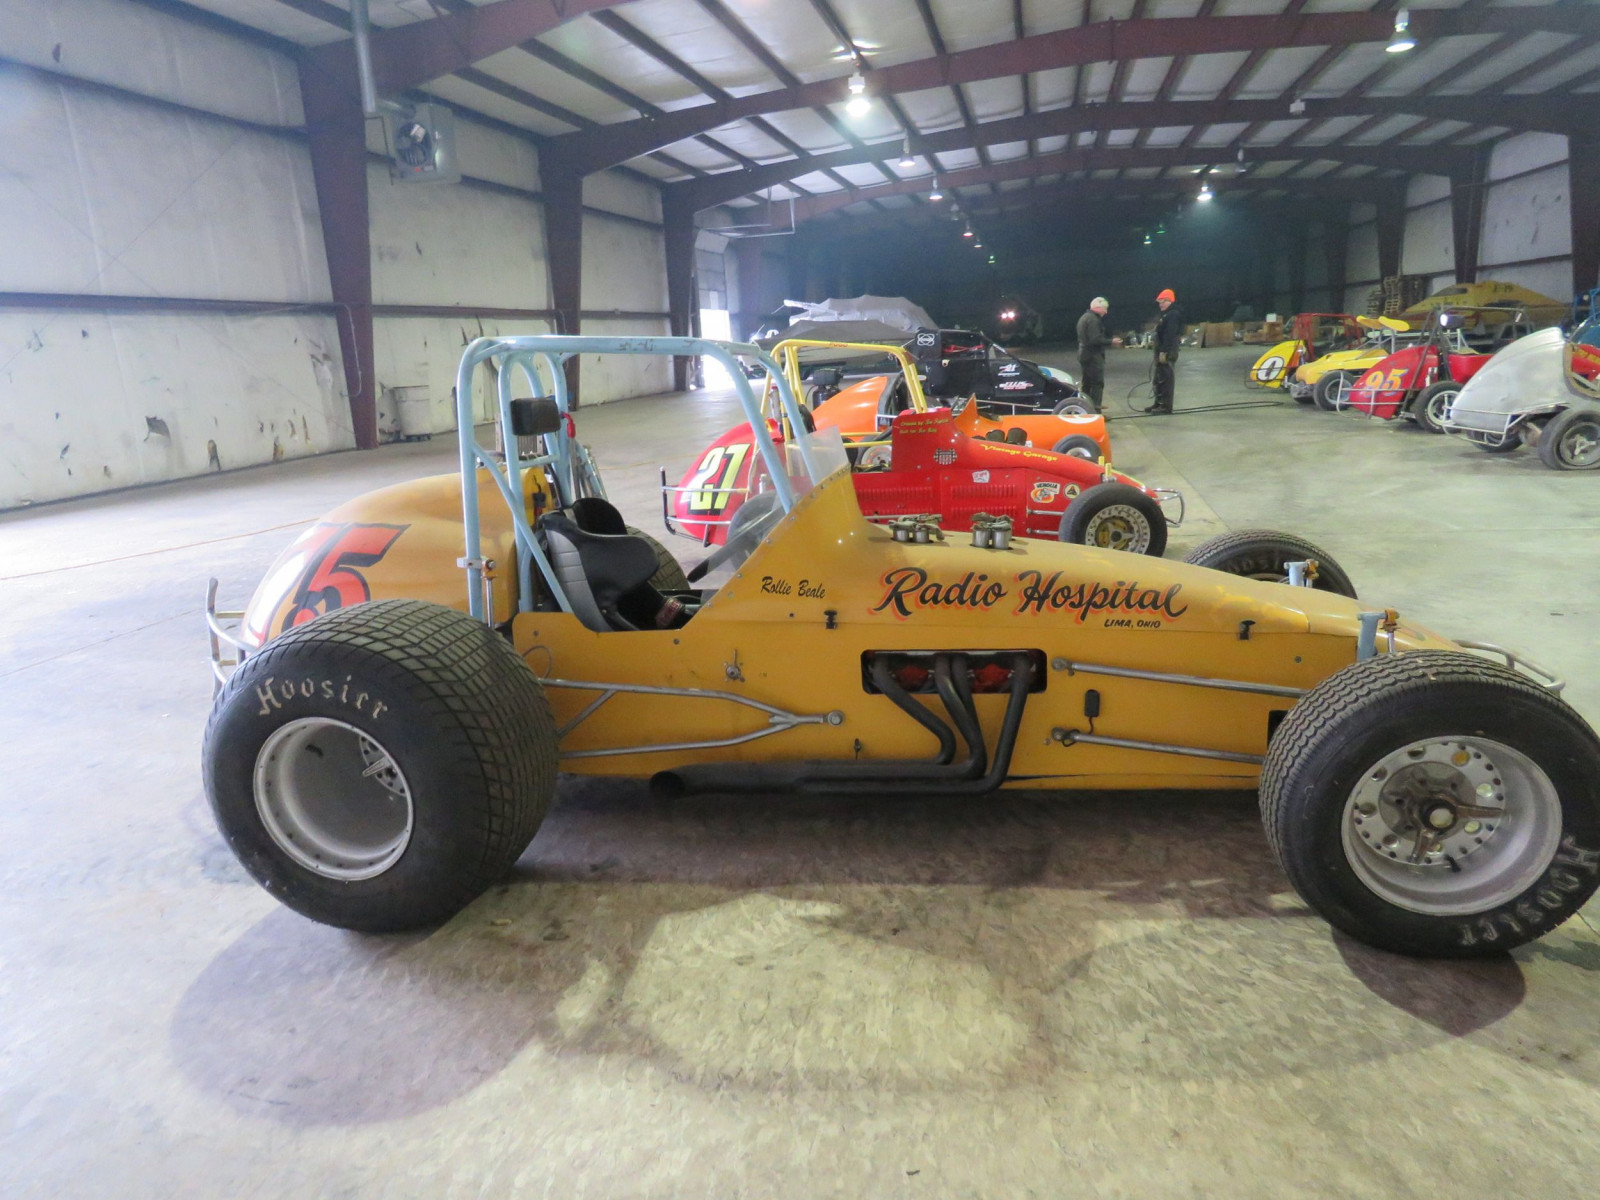 1972 fuel Injected Midget Race Car - Image 4